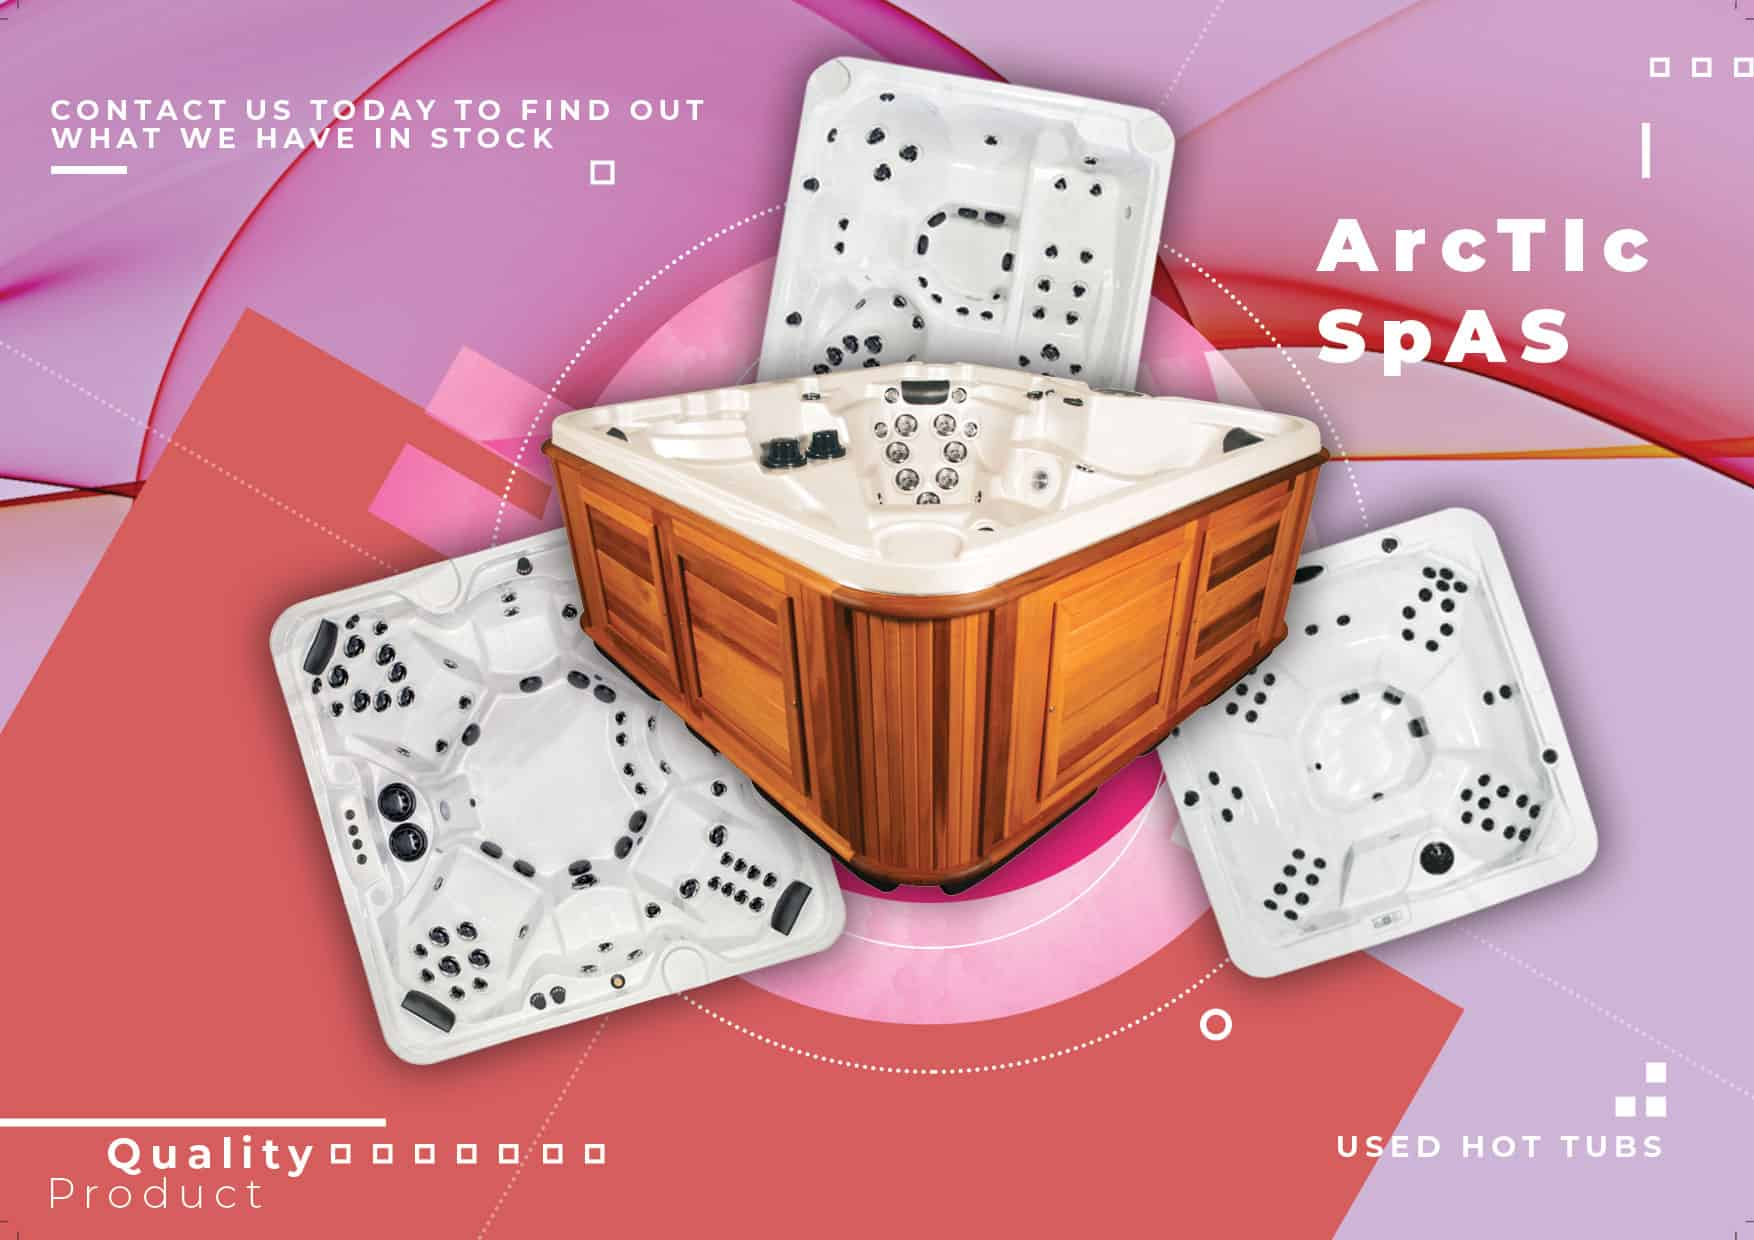 Arctic Spas Contact us today to find out what we have in stock